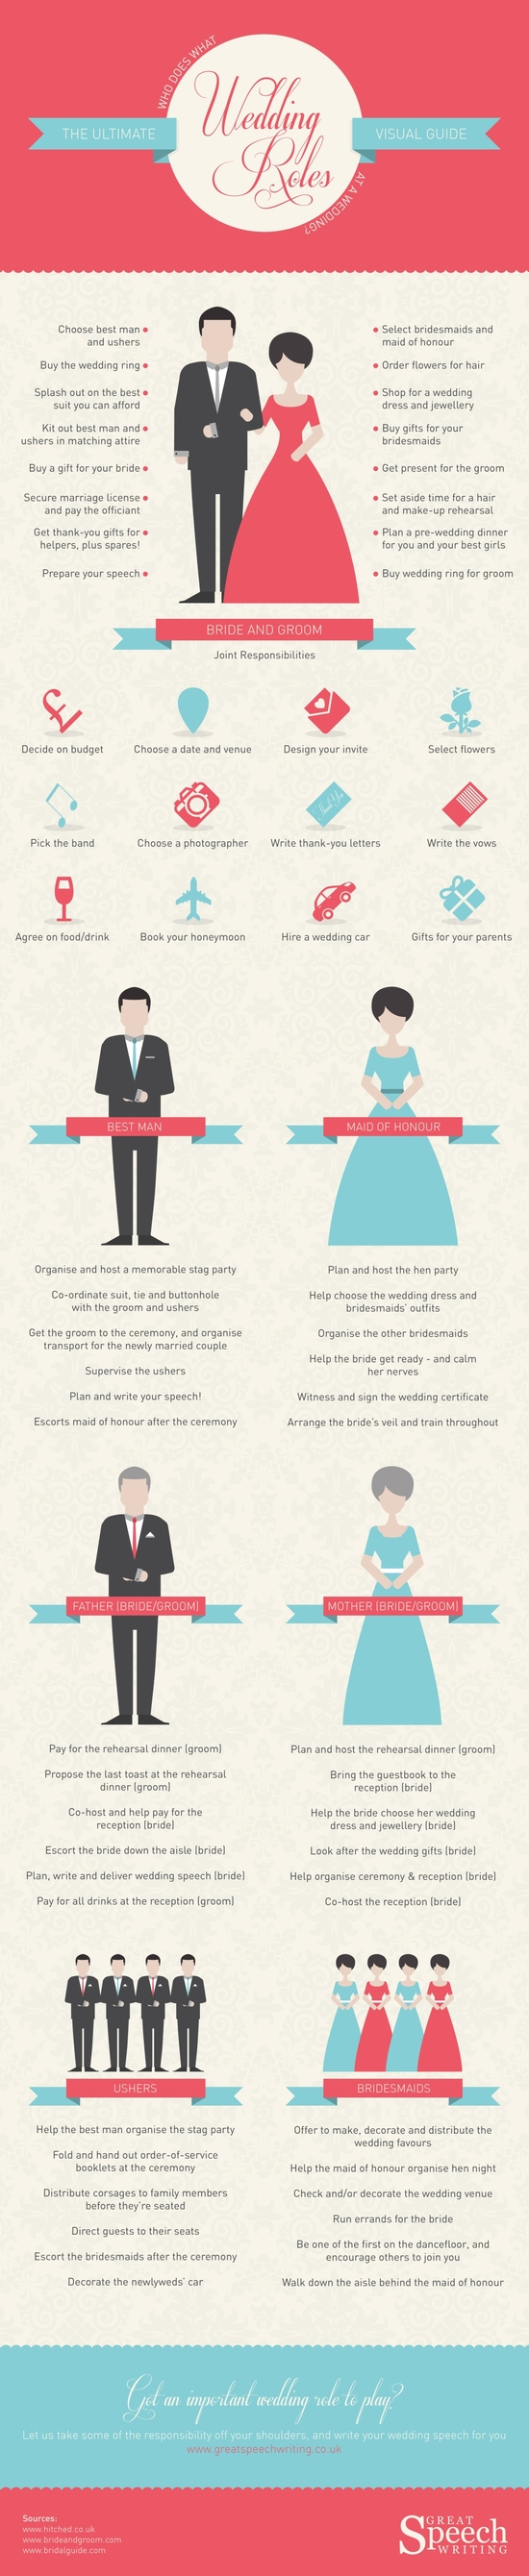 Common Roles in Wedding Planning